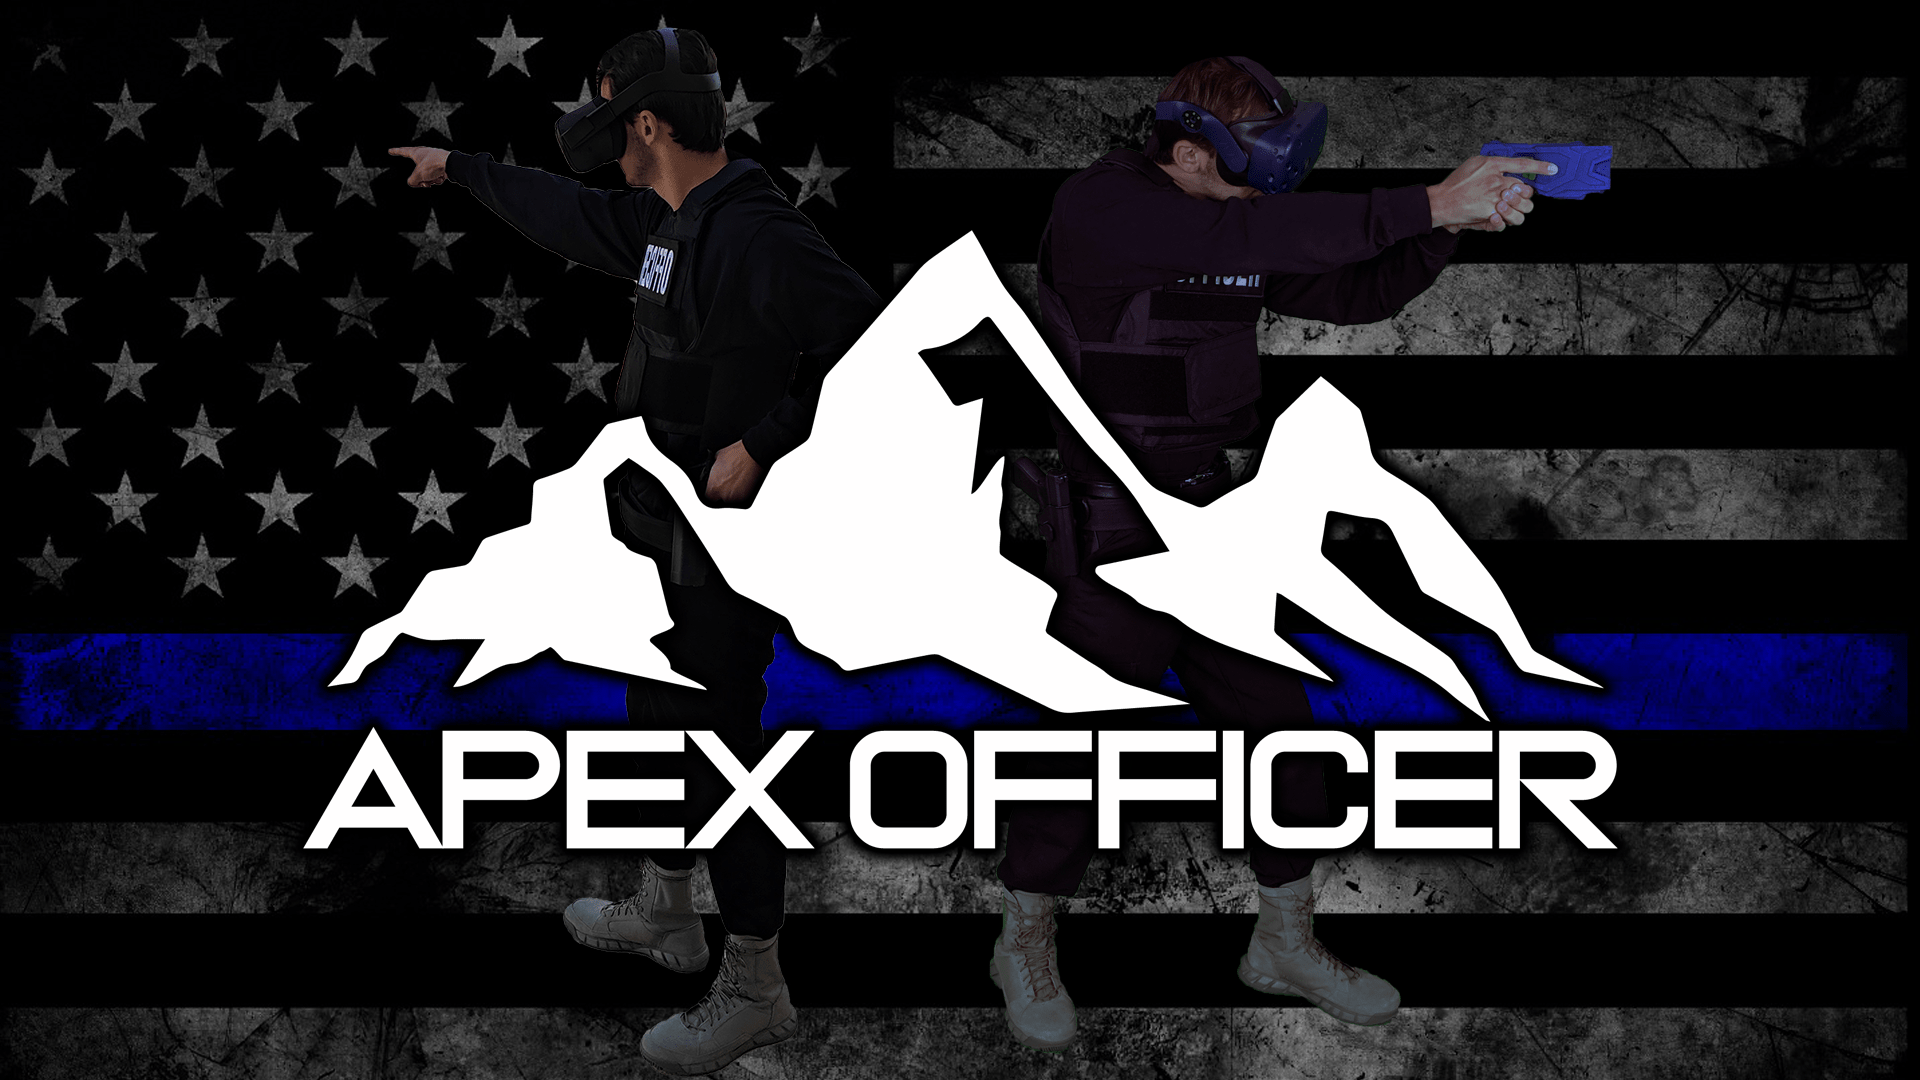 Apex Officer VR Police Training Simulator